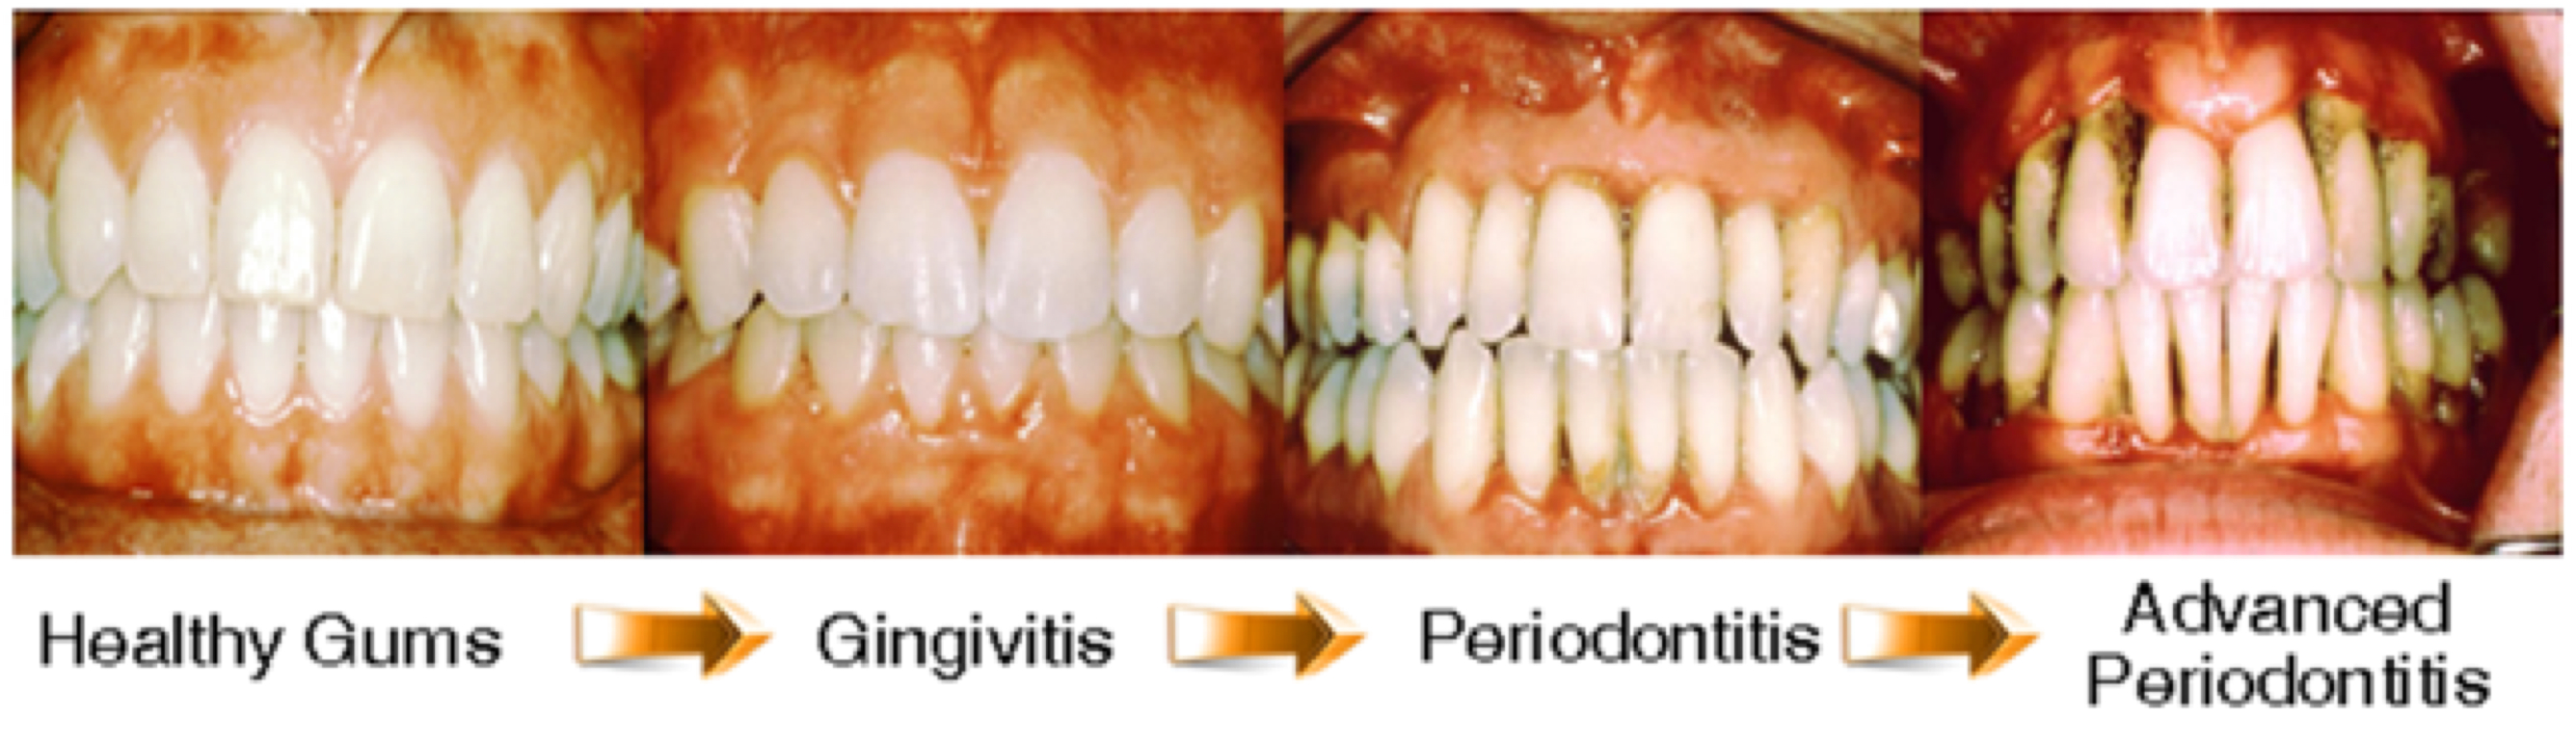 Periodontal Disease Illustration